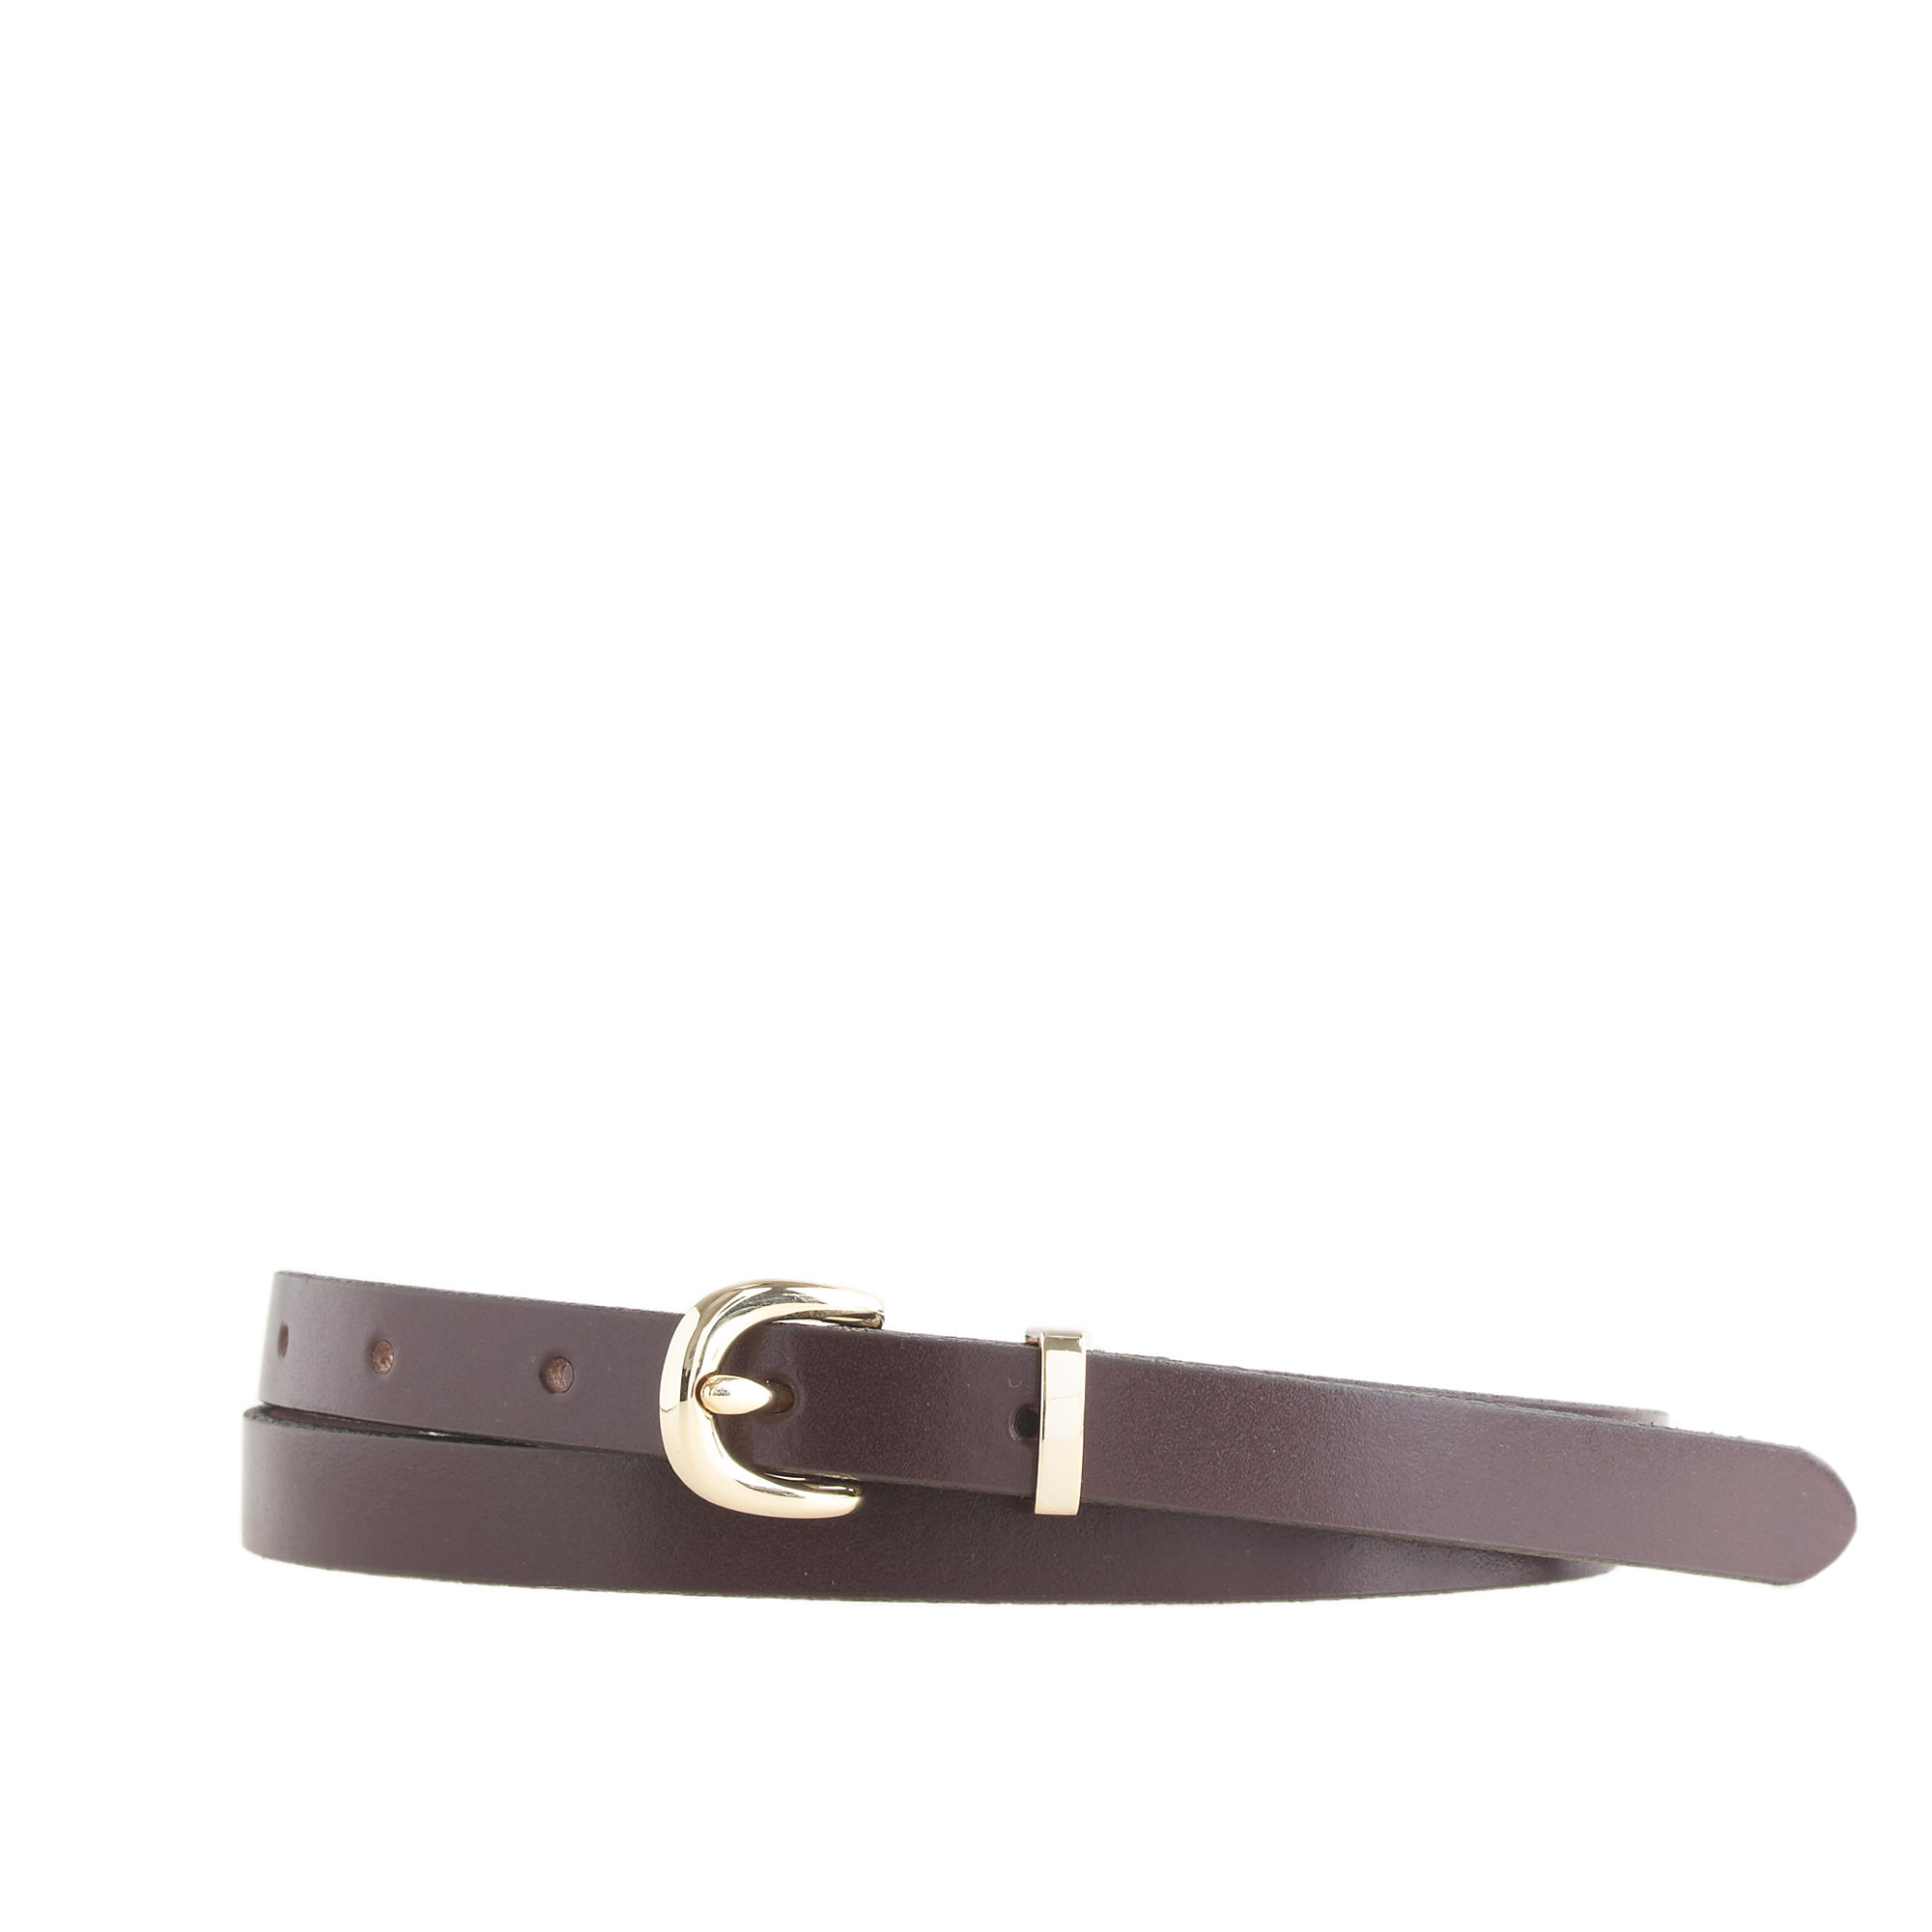 j crew leather belt in brown cocoa lyst